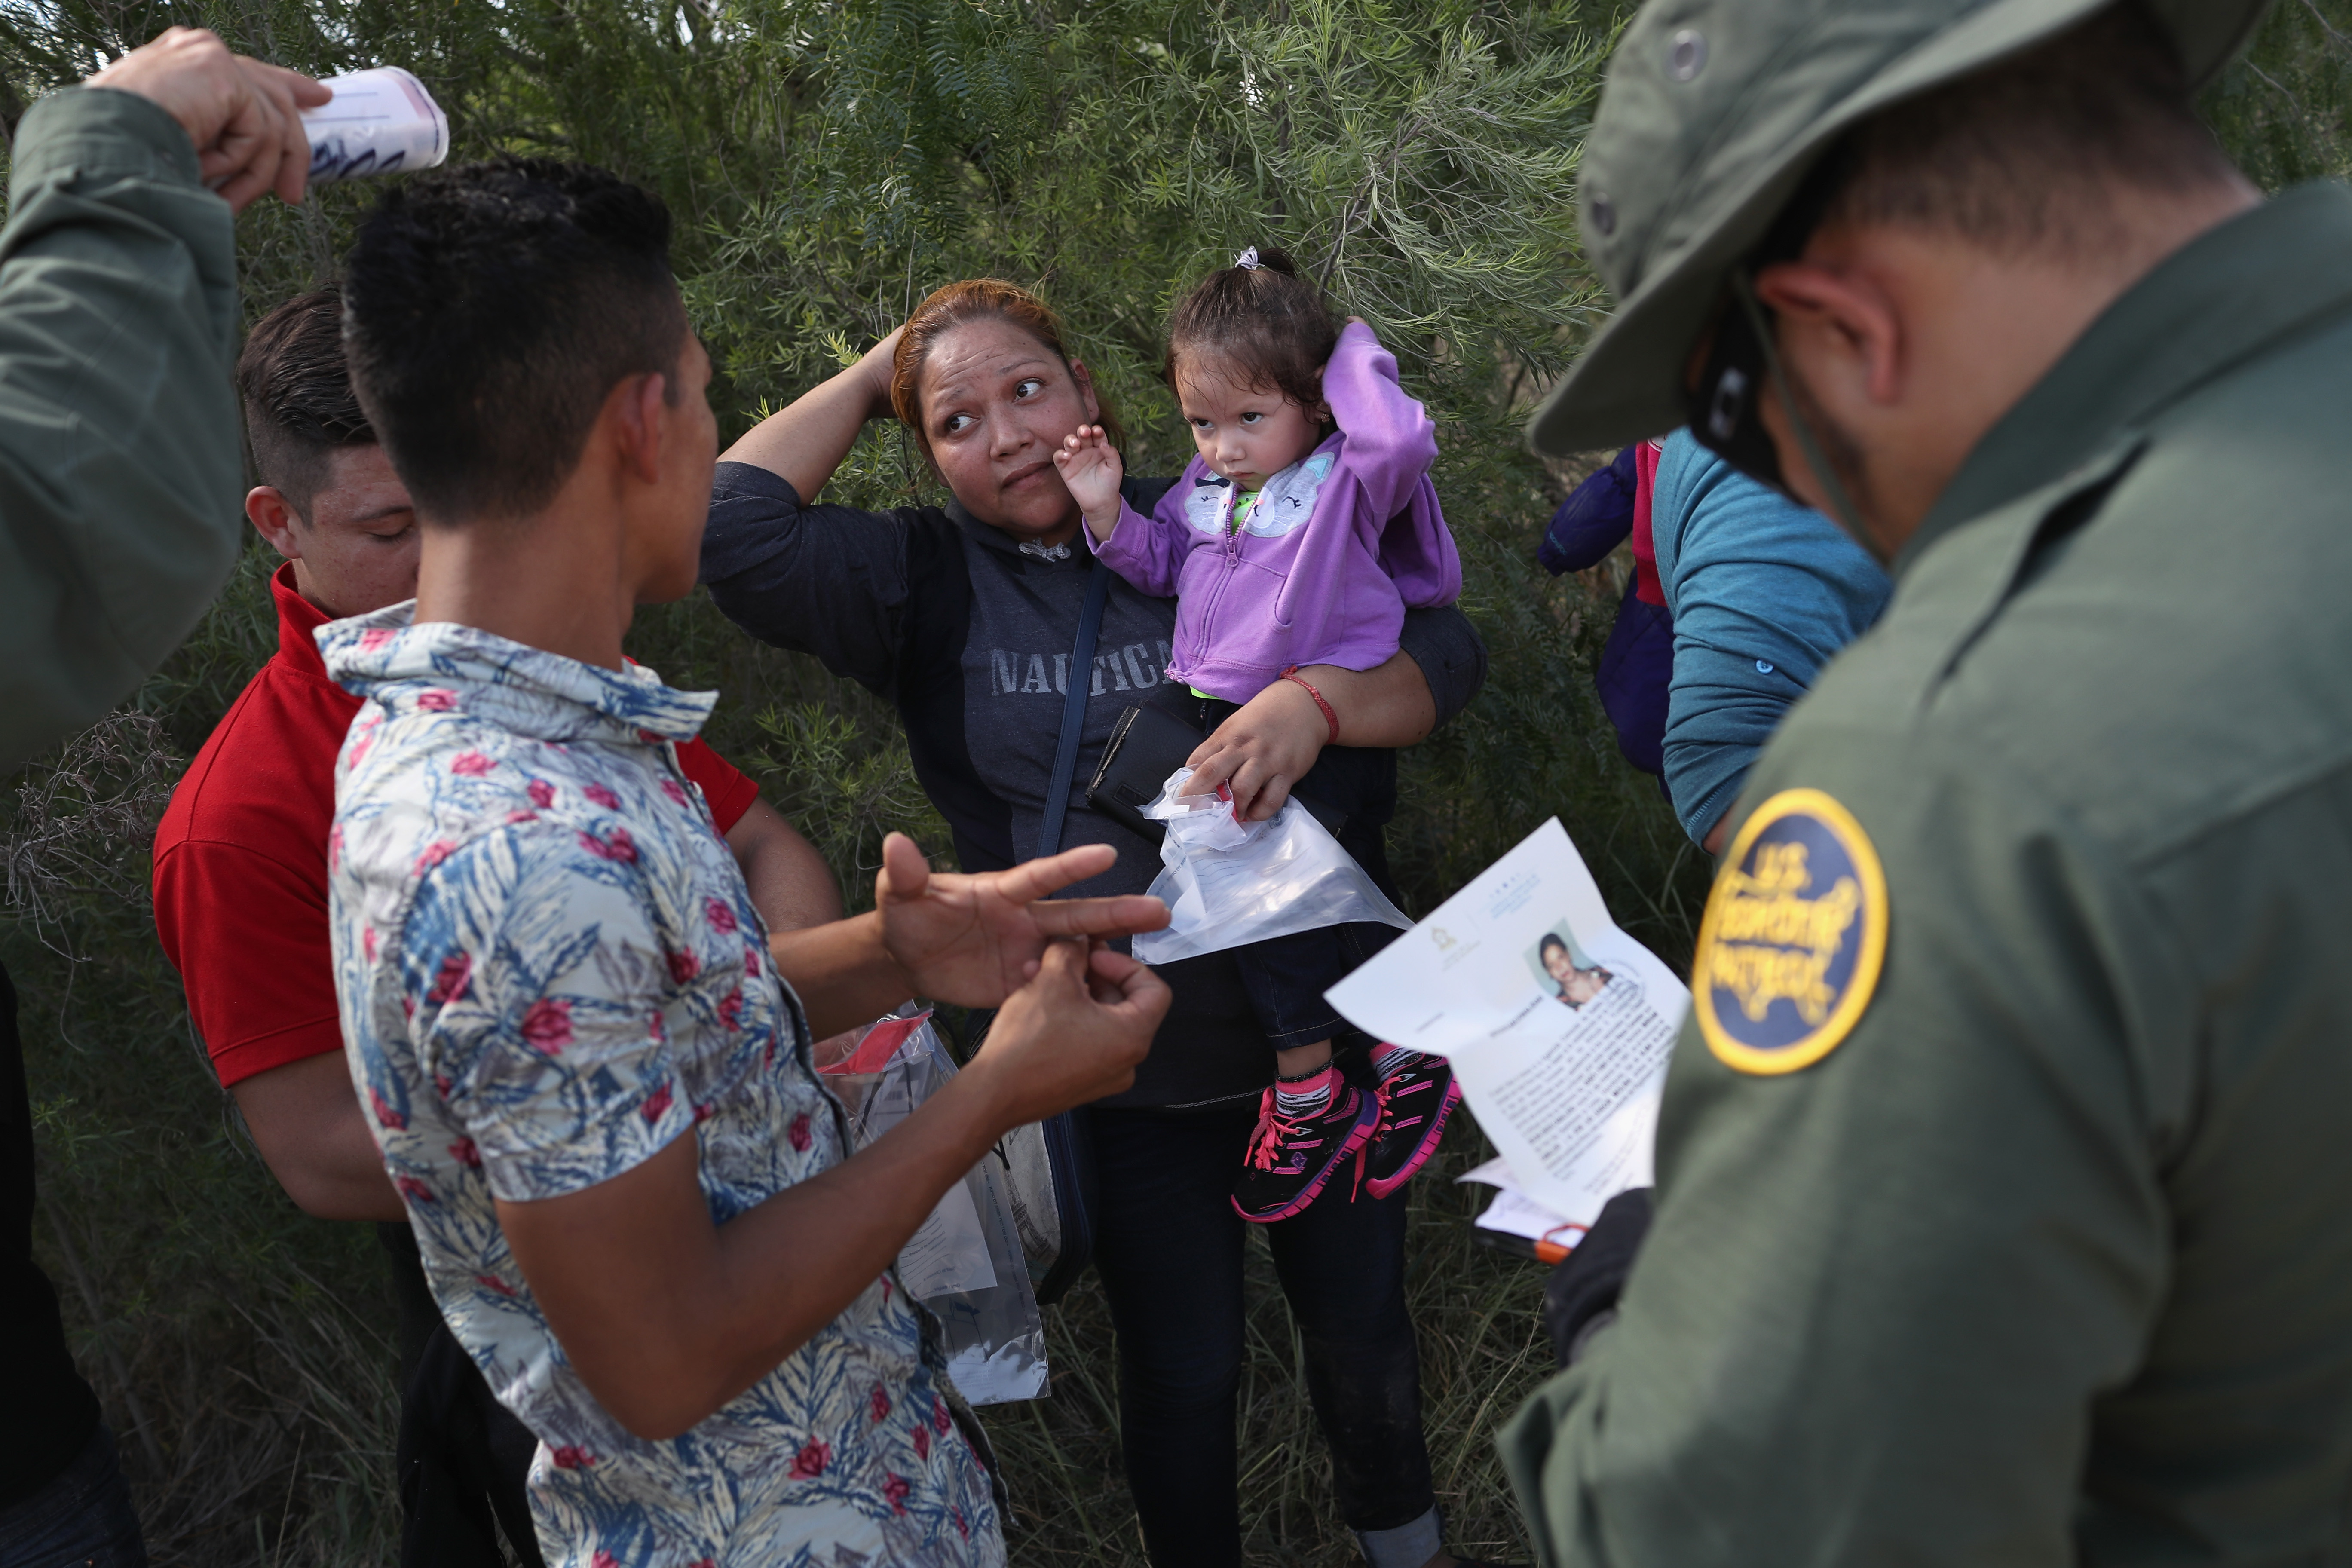 U.S. Border Patrol agents ask a group of Central American asylum seekers to remove hair bands and wedding rings before taking them into custody on June 12, 2018 near McAllen, Texas. The immigrant families were then sent to a U.S. Customs and Border Protection (CBP) processing center for possible separation. U.S. border authorities are executing the Trump administration's  zero tolerance  policy towards undocumented immigrants. U.S. Attorney General Jeff Sessions also said that domestic and gang violence in immigrants' country of origin would no longer qualify them for political asylum status.